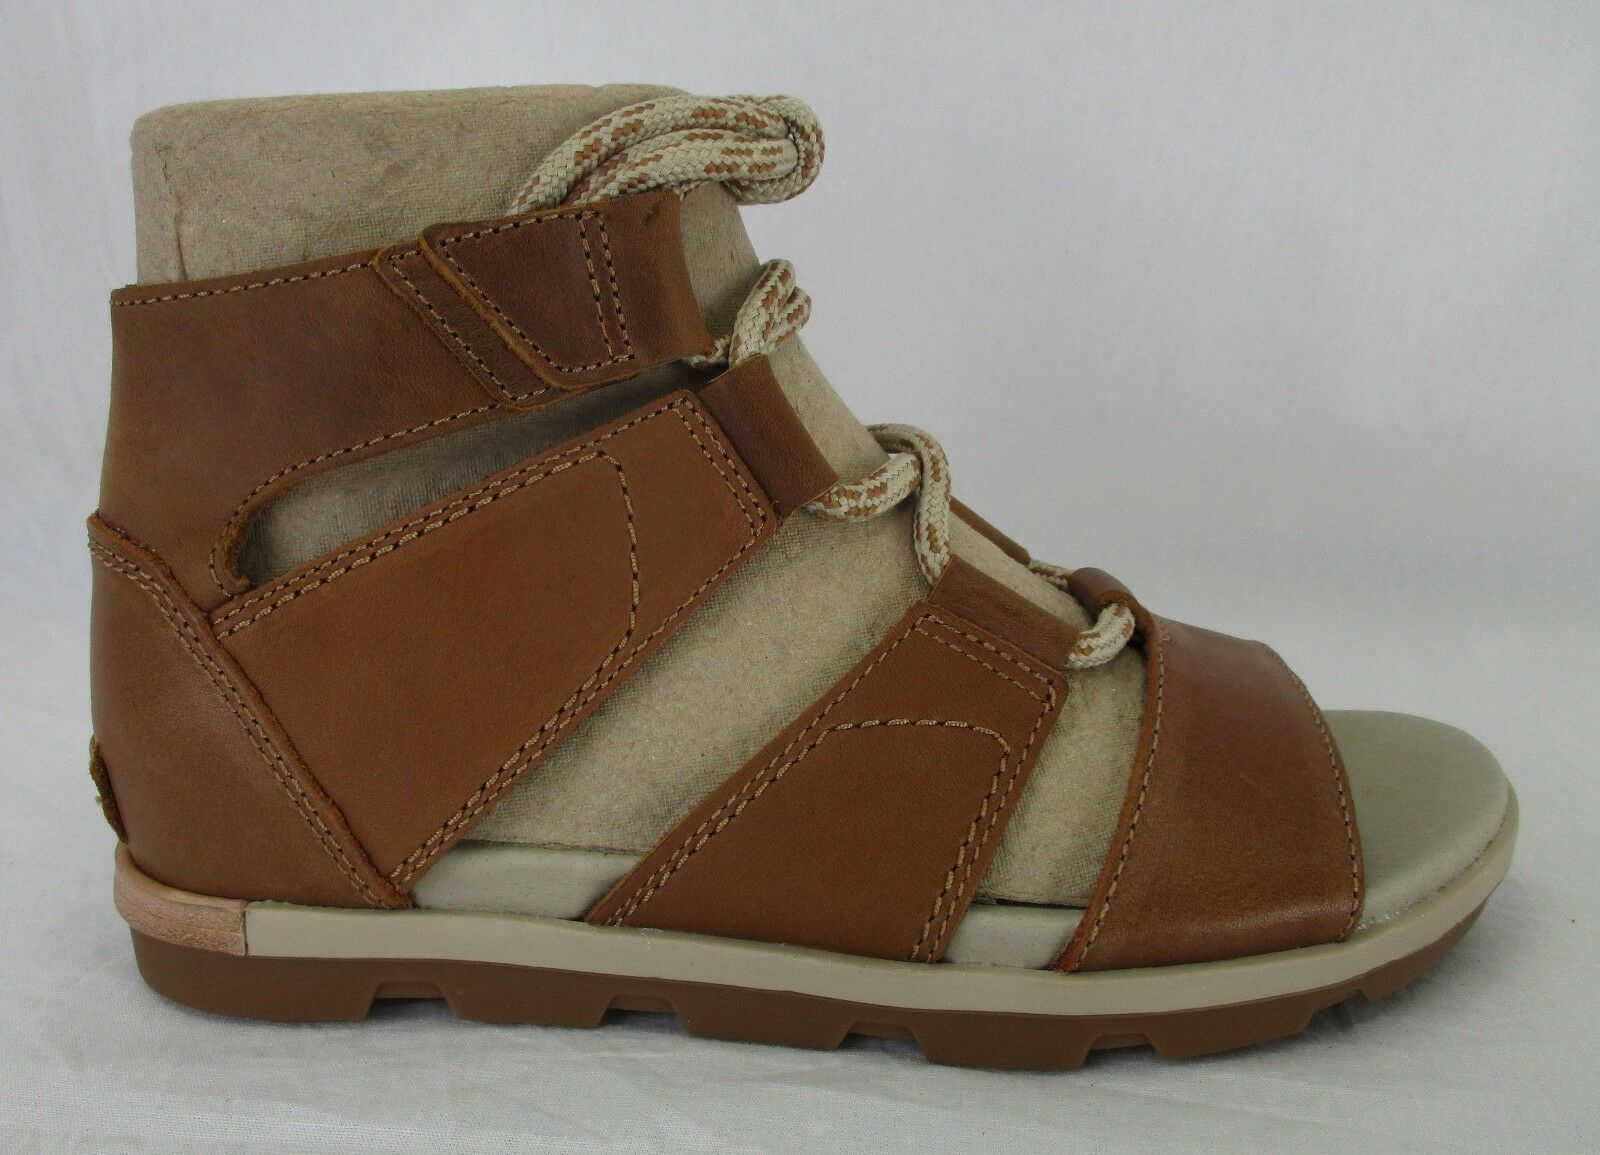 Sorel Donna Torpeda Lace II Sandals 9.5 1727321 Camel Brown Size 9.5 Sandals d8efd7